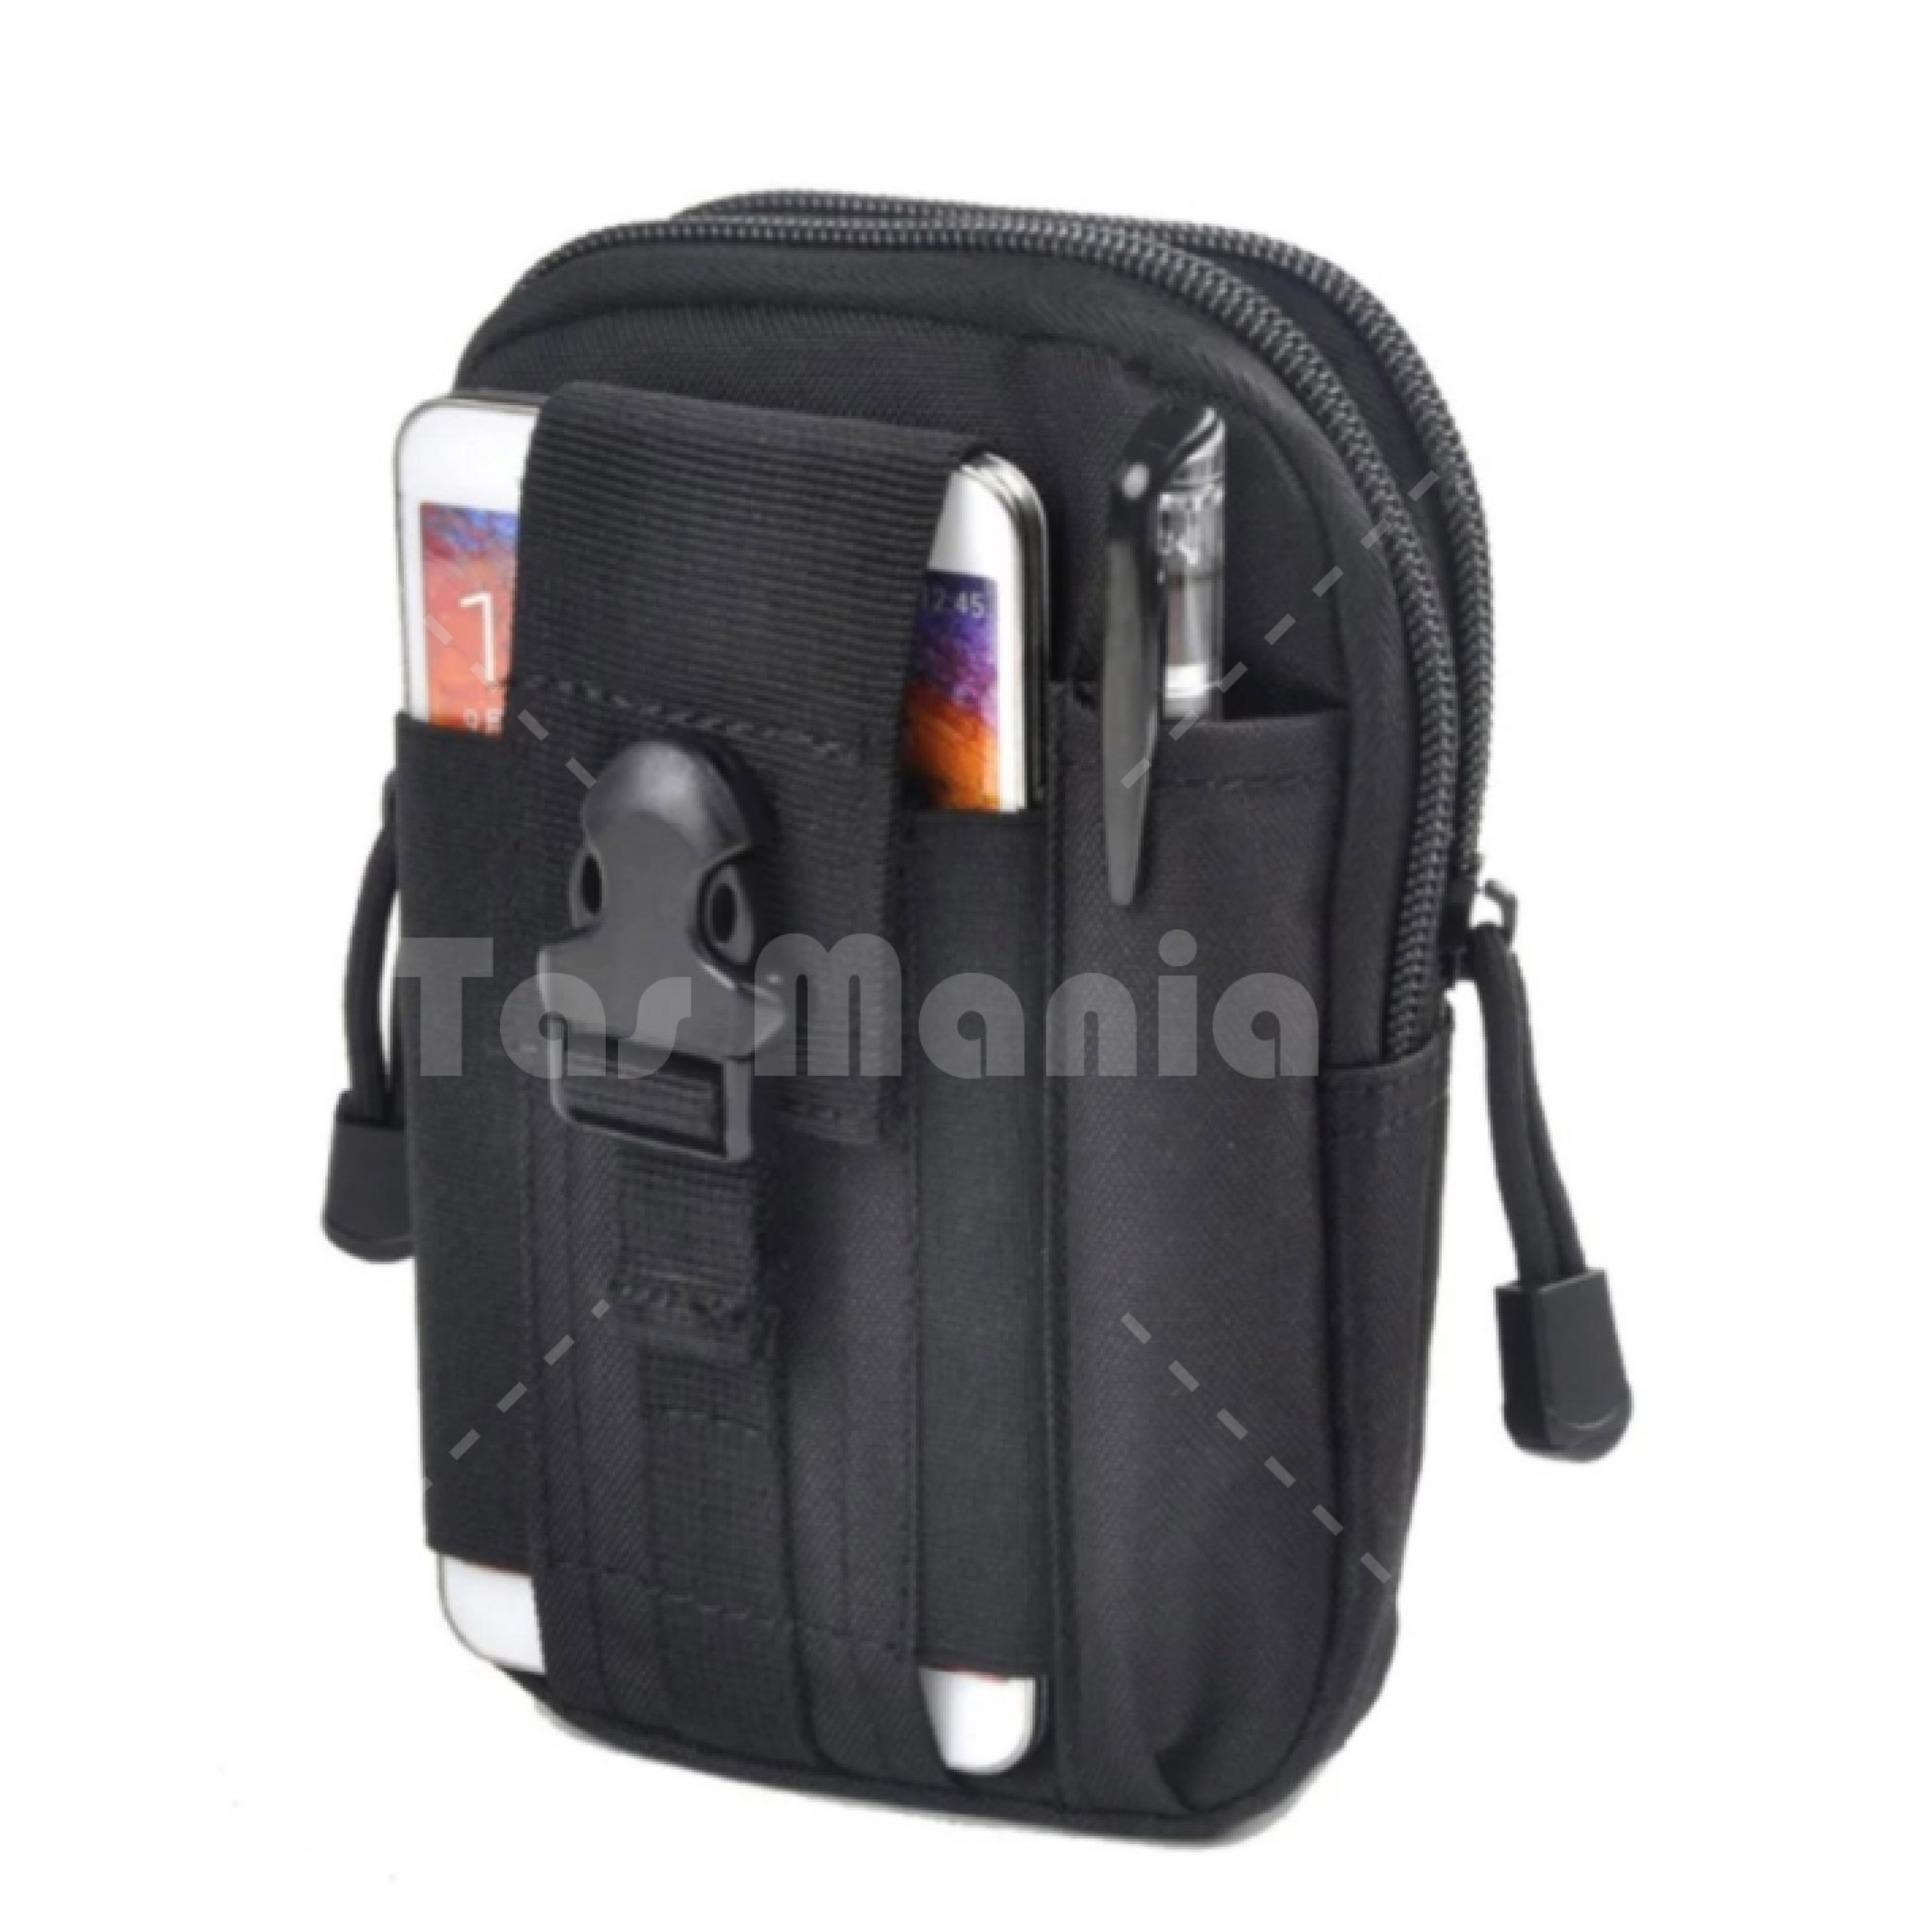 Tas Pinggang Pria Army Tactical Molle Import Waist Small Bag Military Hitam Shoulder Bag Chest Bag Tas Selempang Slempang Cowok Canvas Kanvas Tas HP